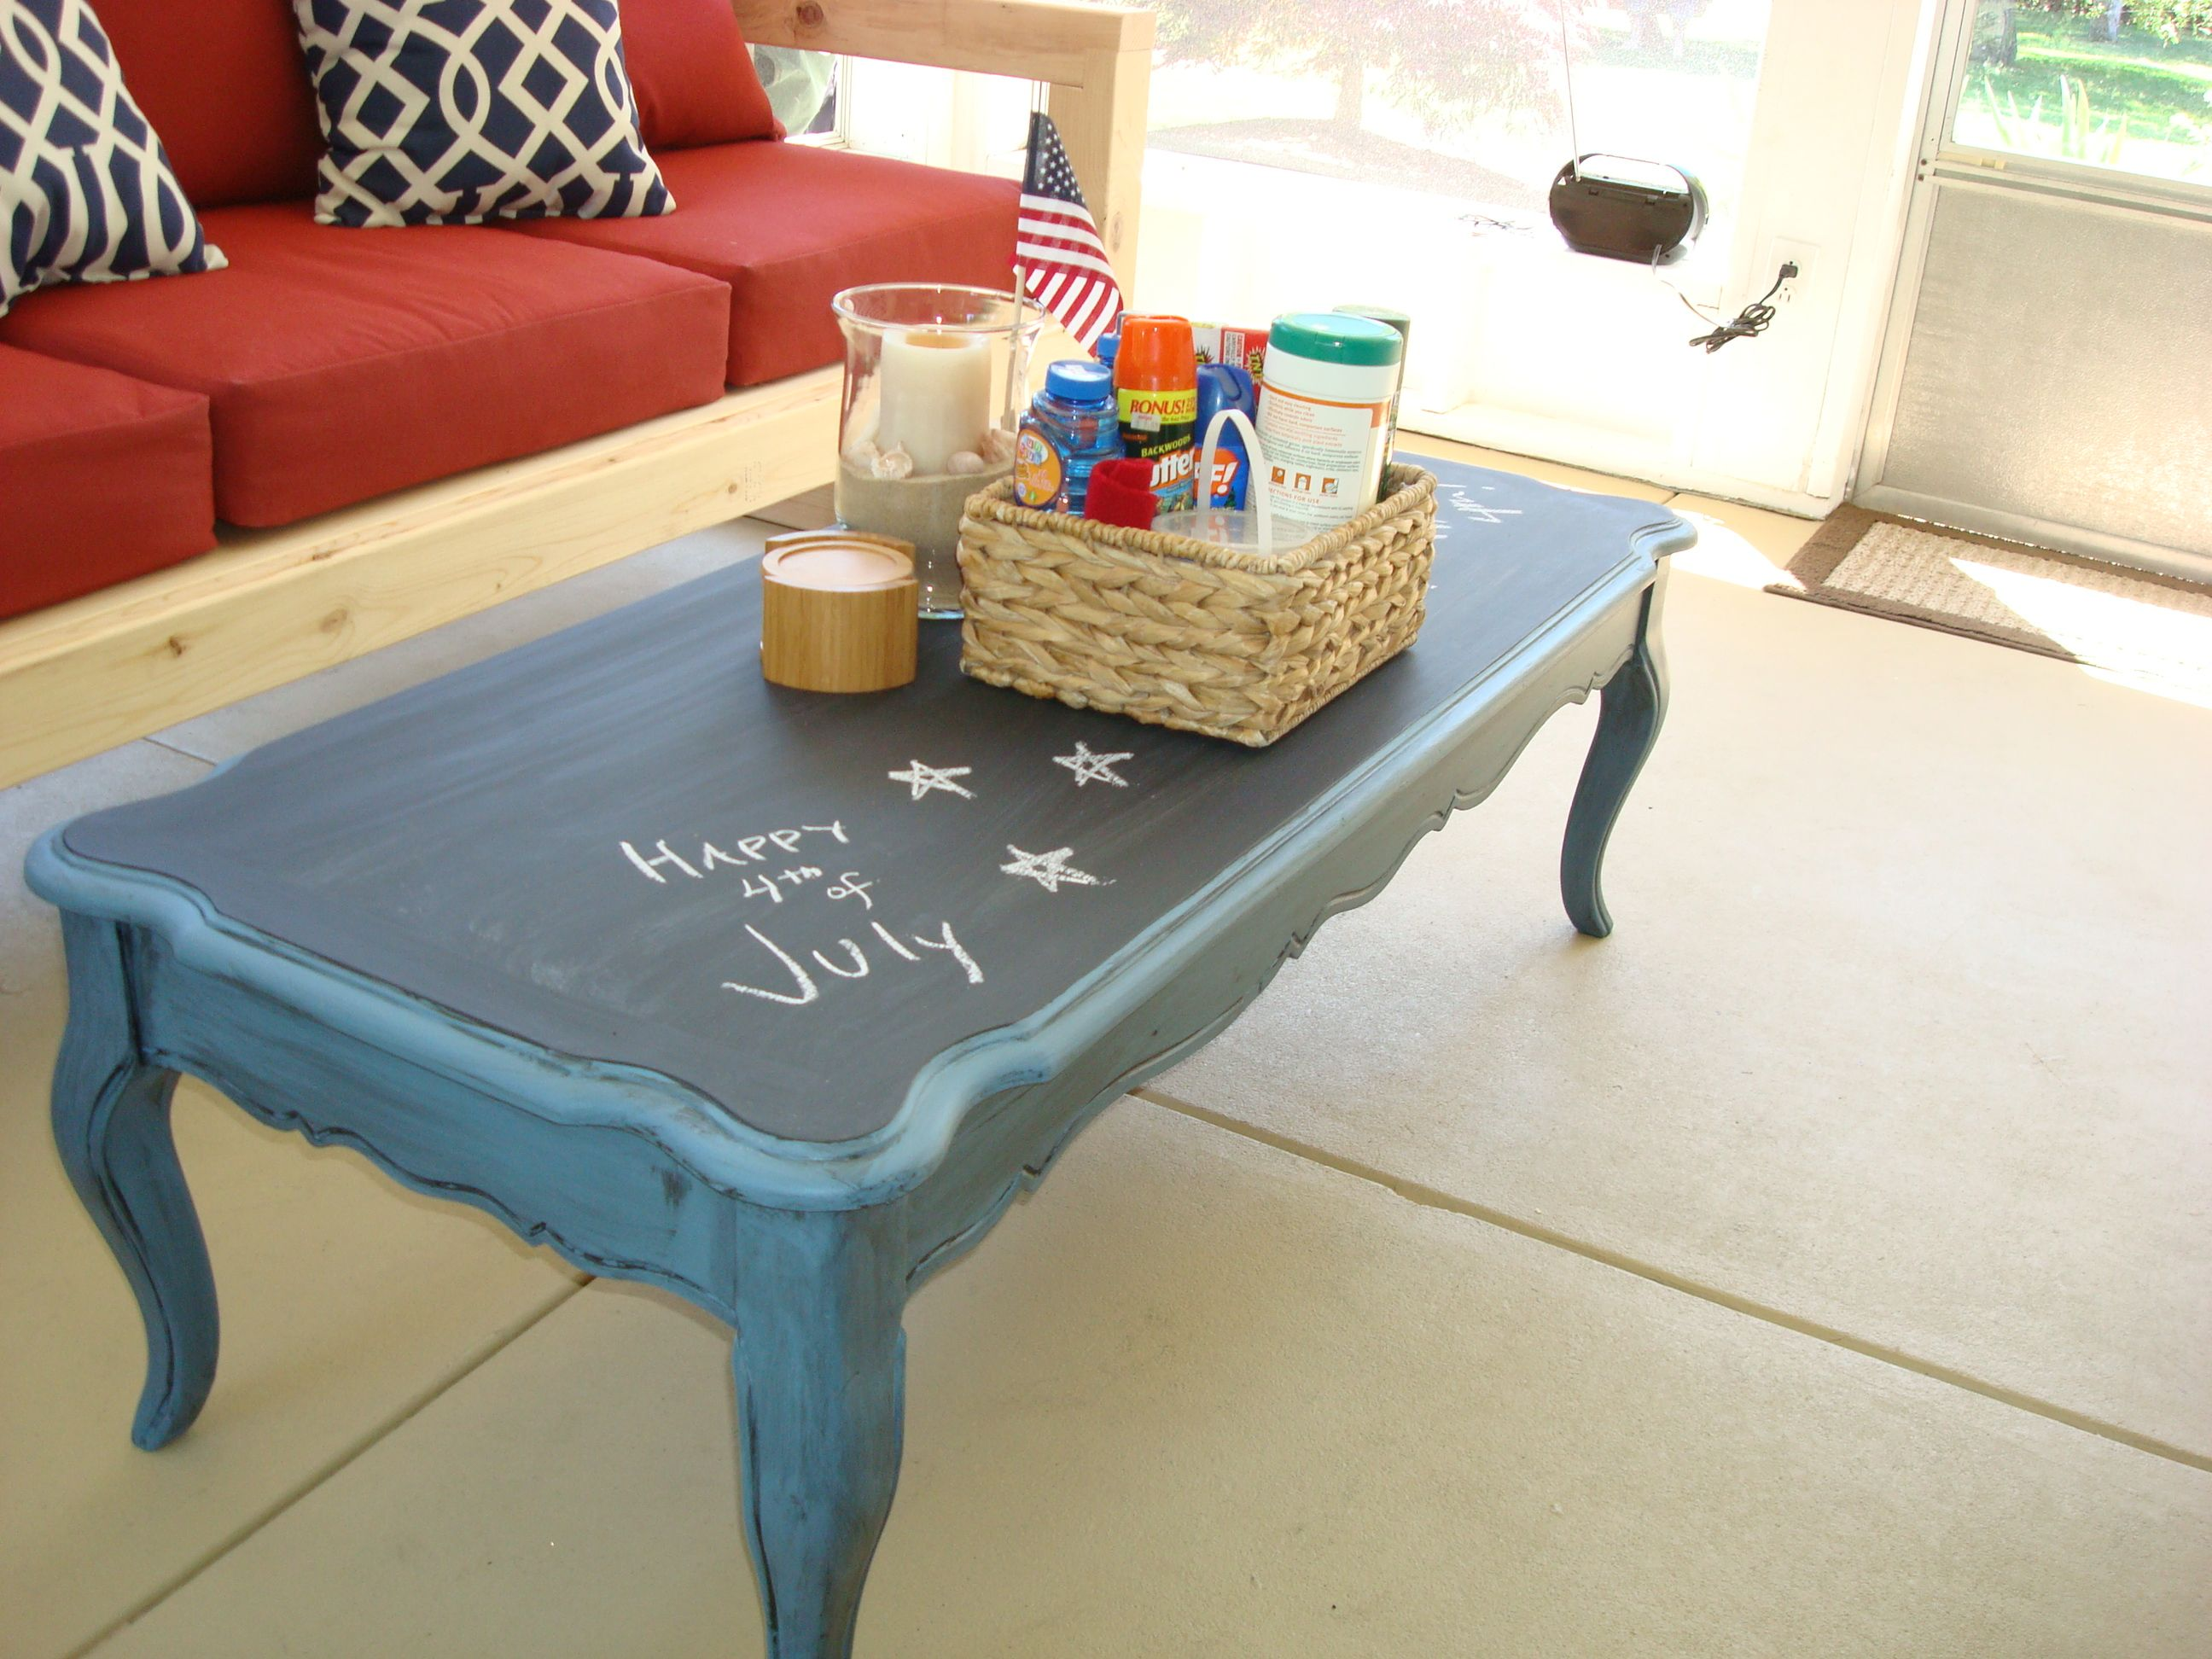 5 Ideas For A Do It Yourself Coffee Table, Letu0027s Do It! #coffeetable